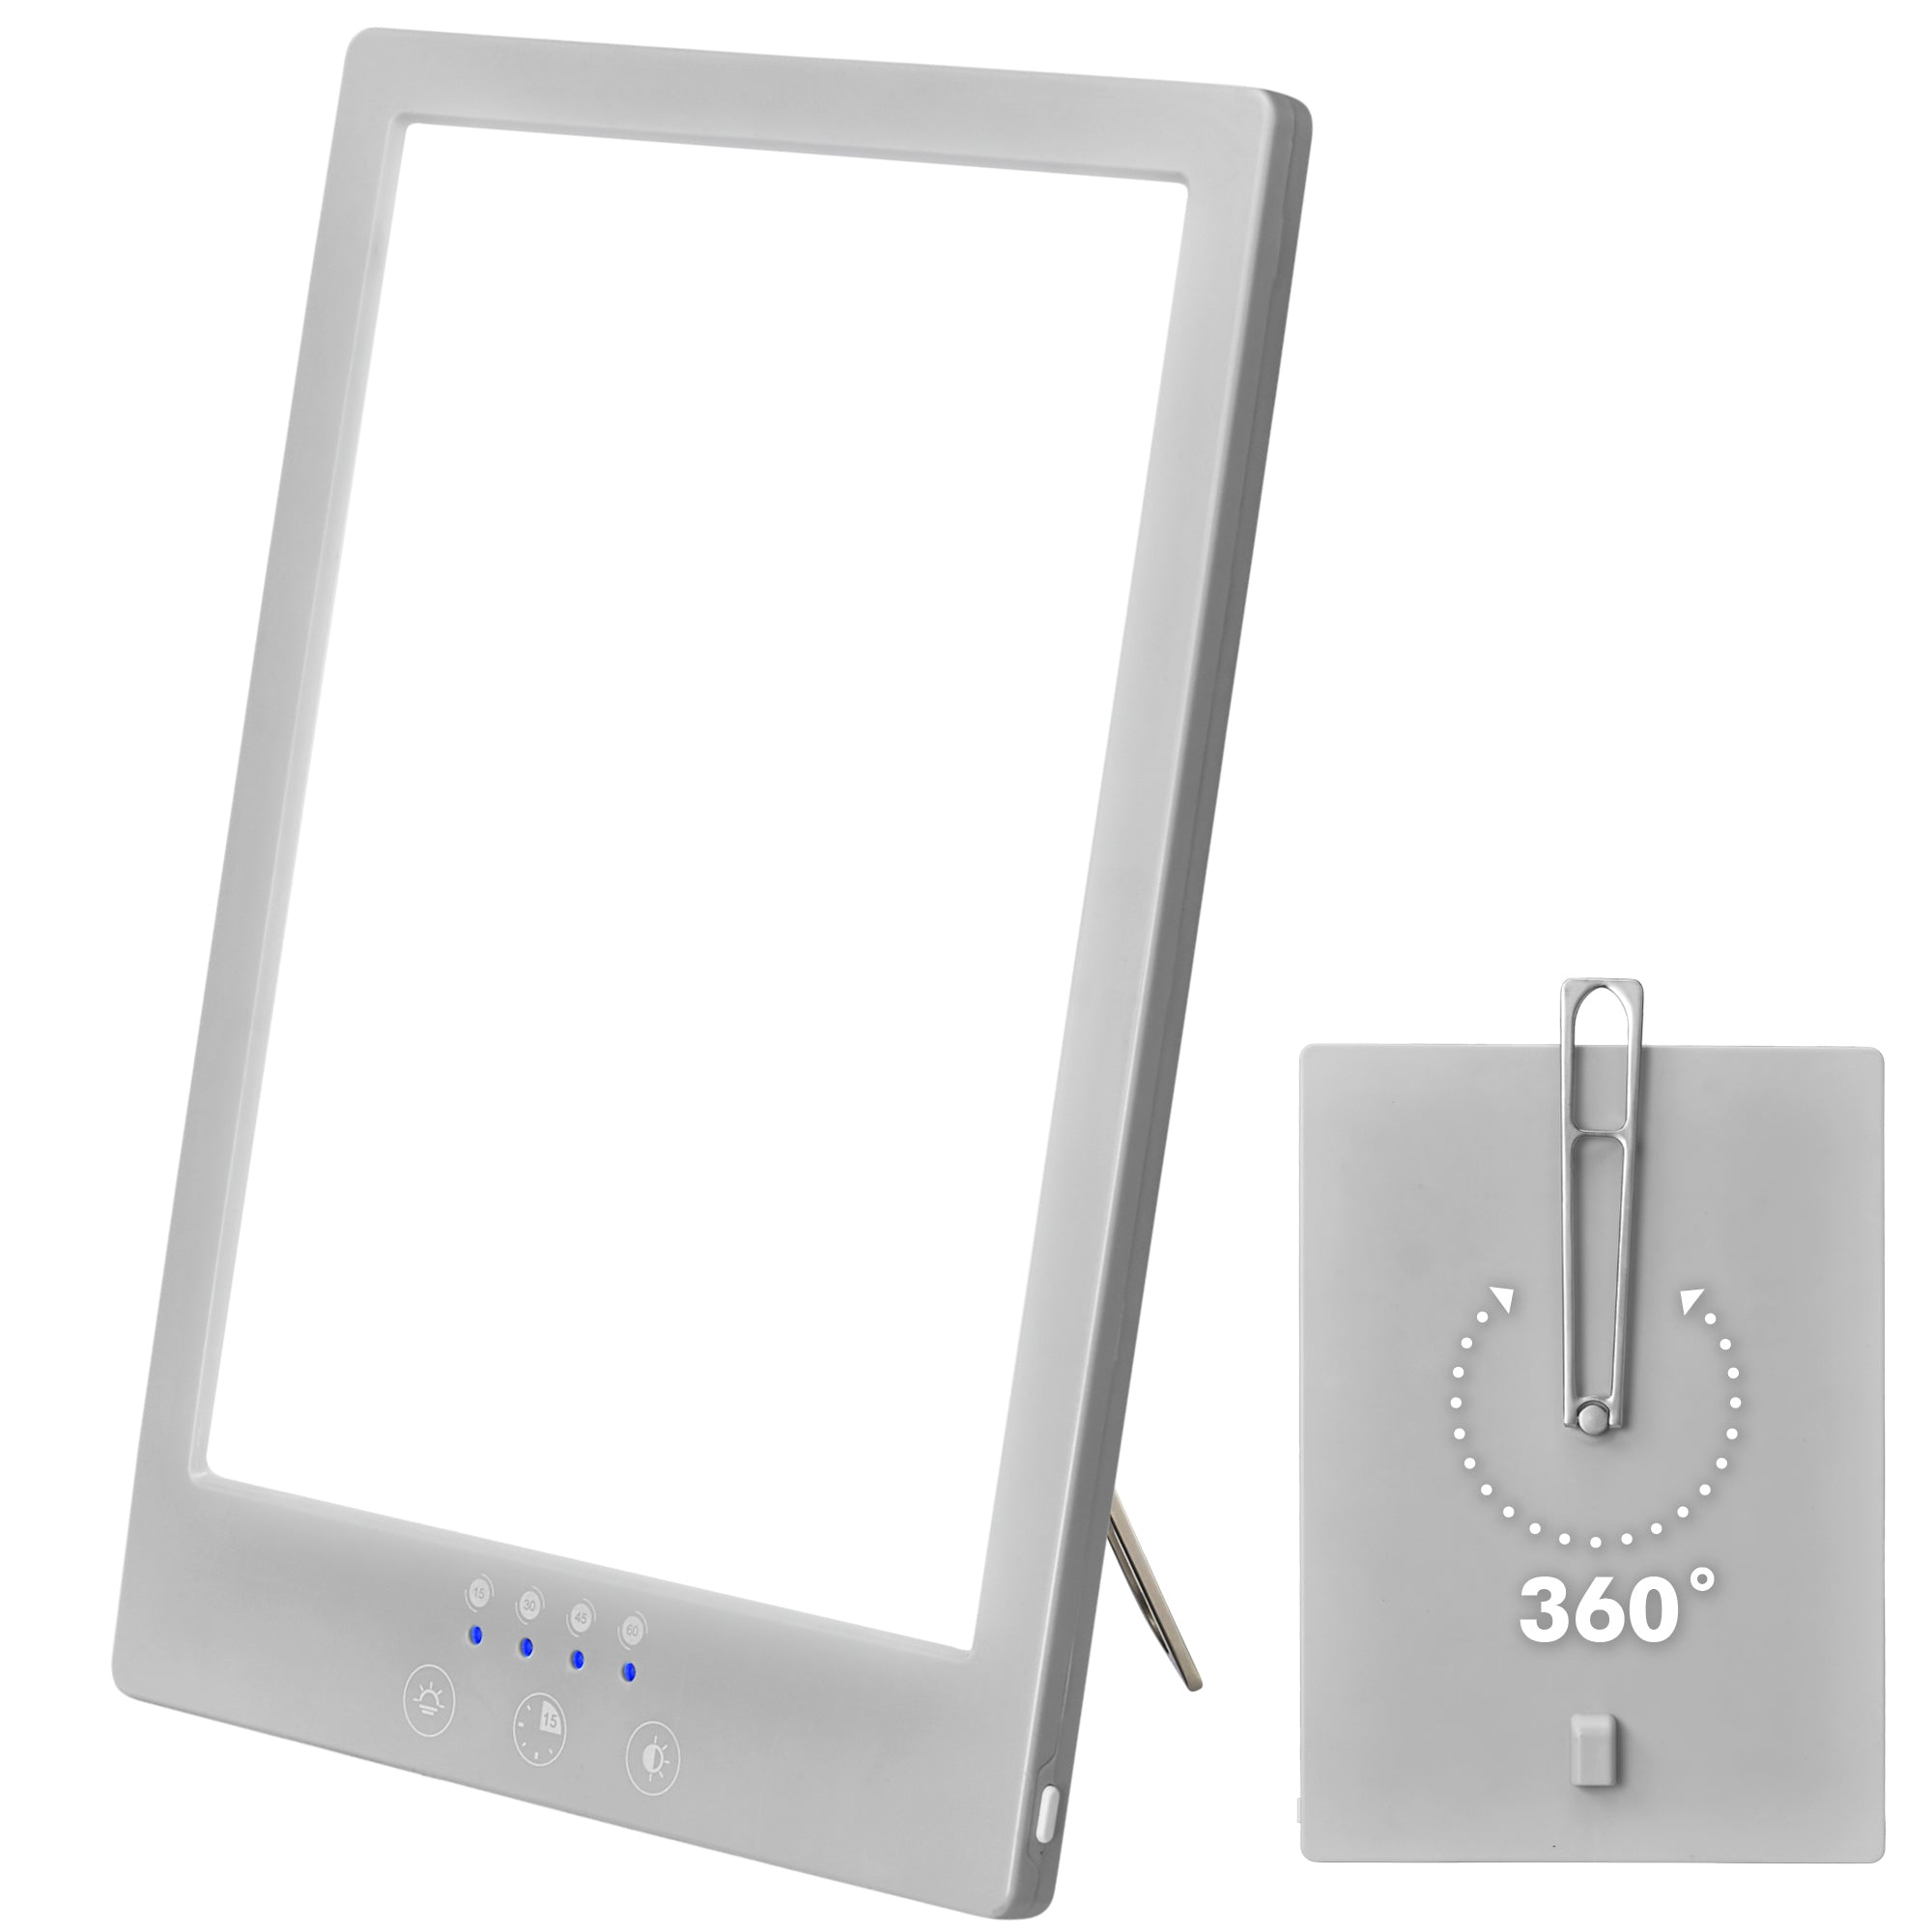 Sun Light Therapy Lamp - UV Free Therapeutic LED Temperature Control Lamp, 3000 to 6500K  - Rotating Stand, Timer, Gray